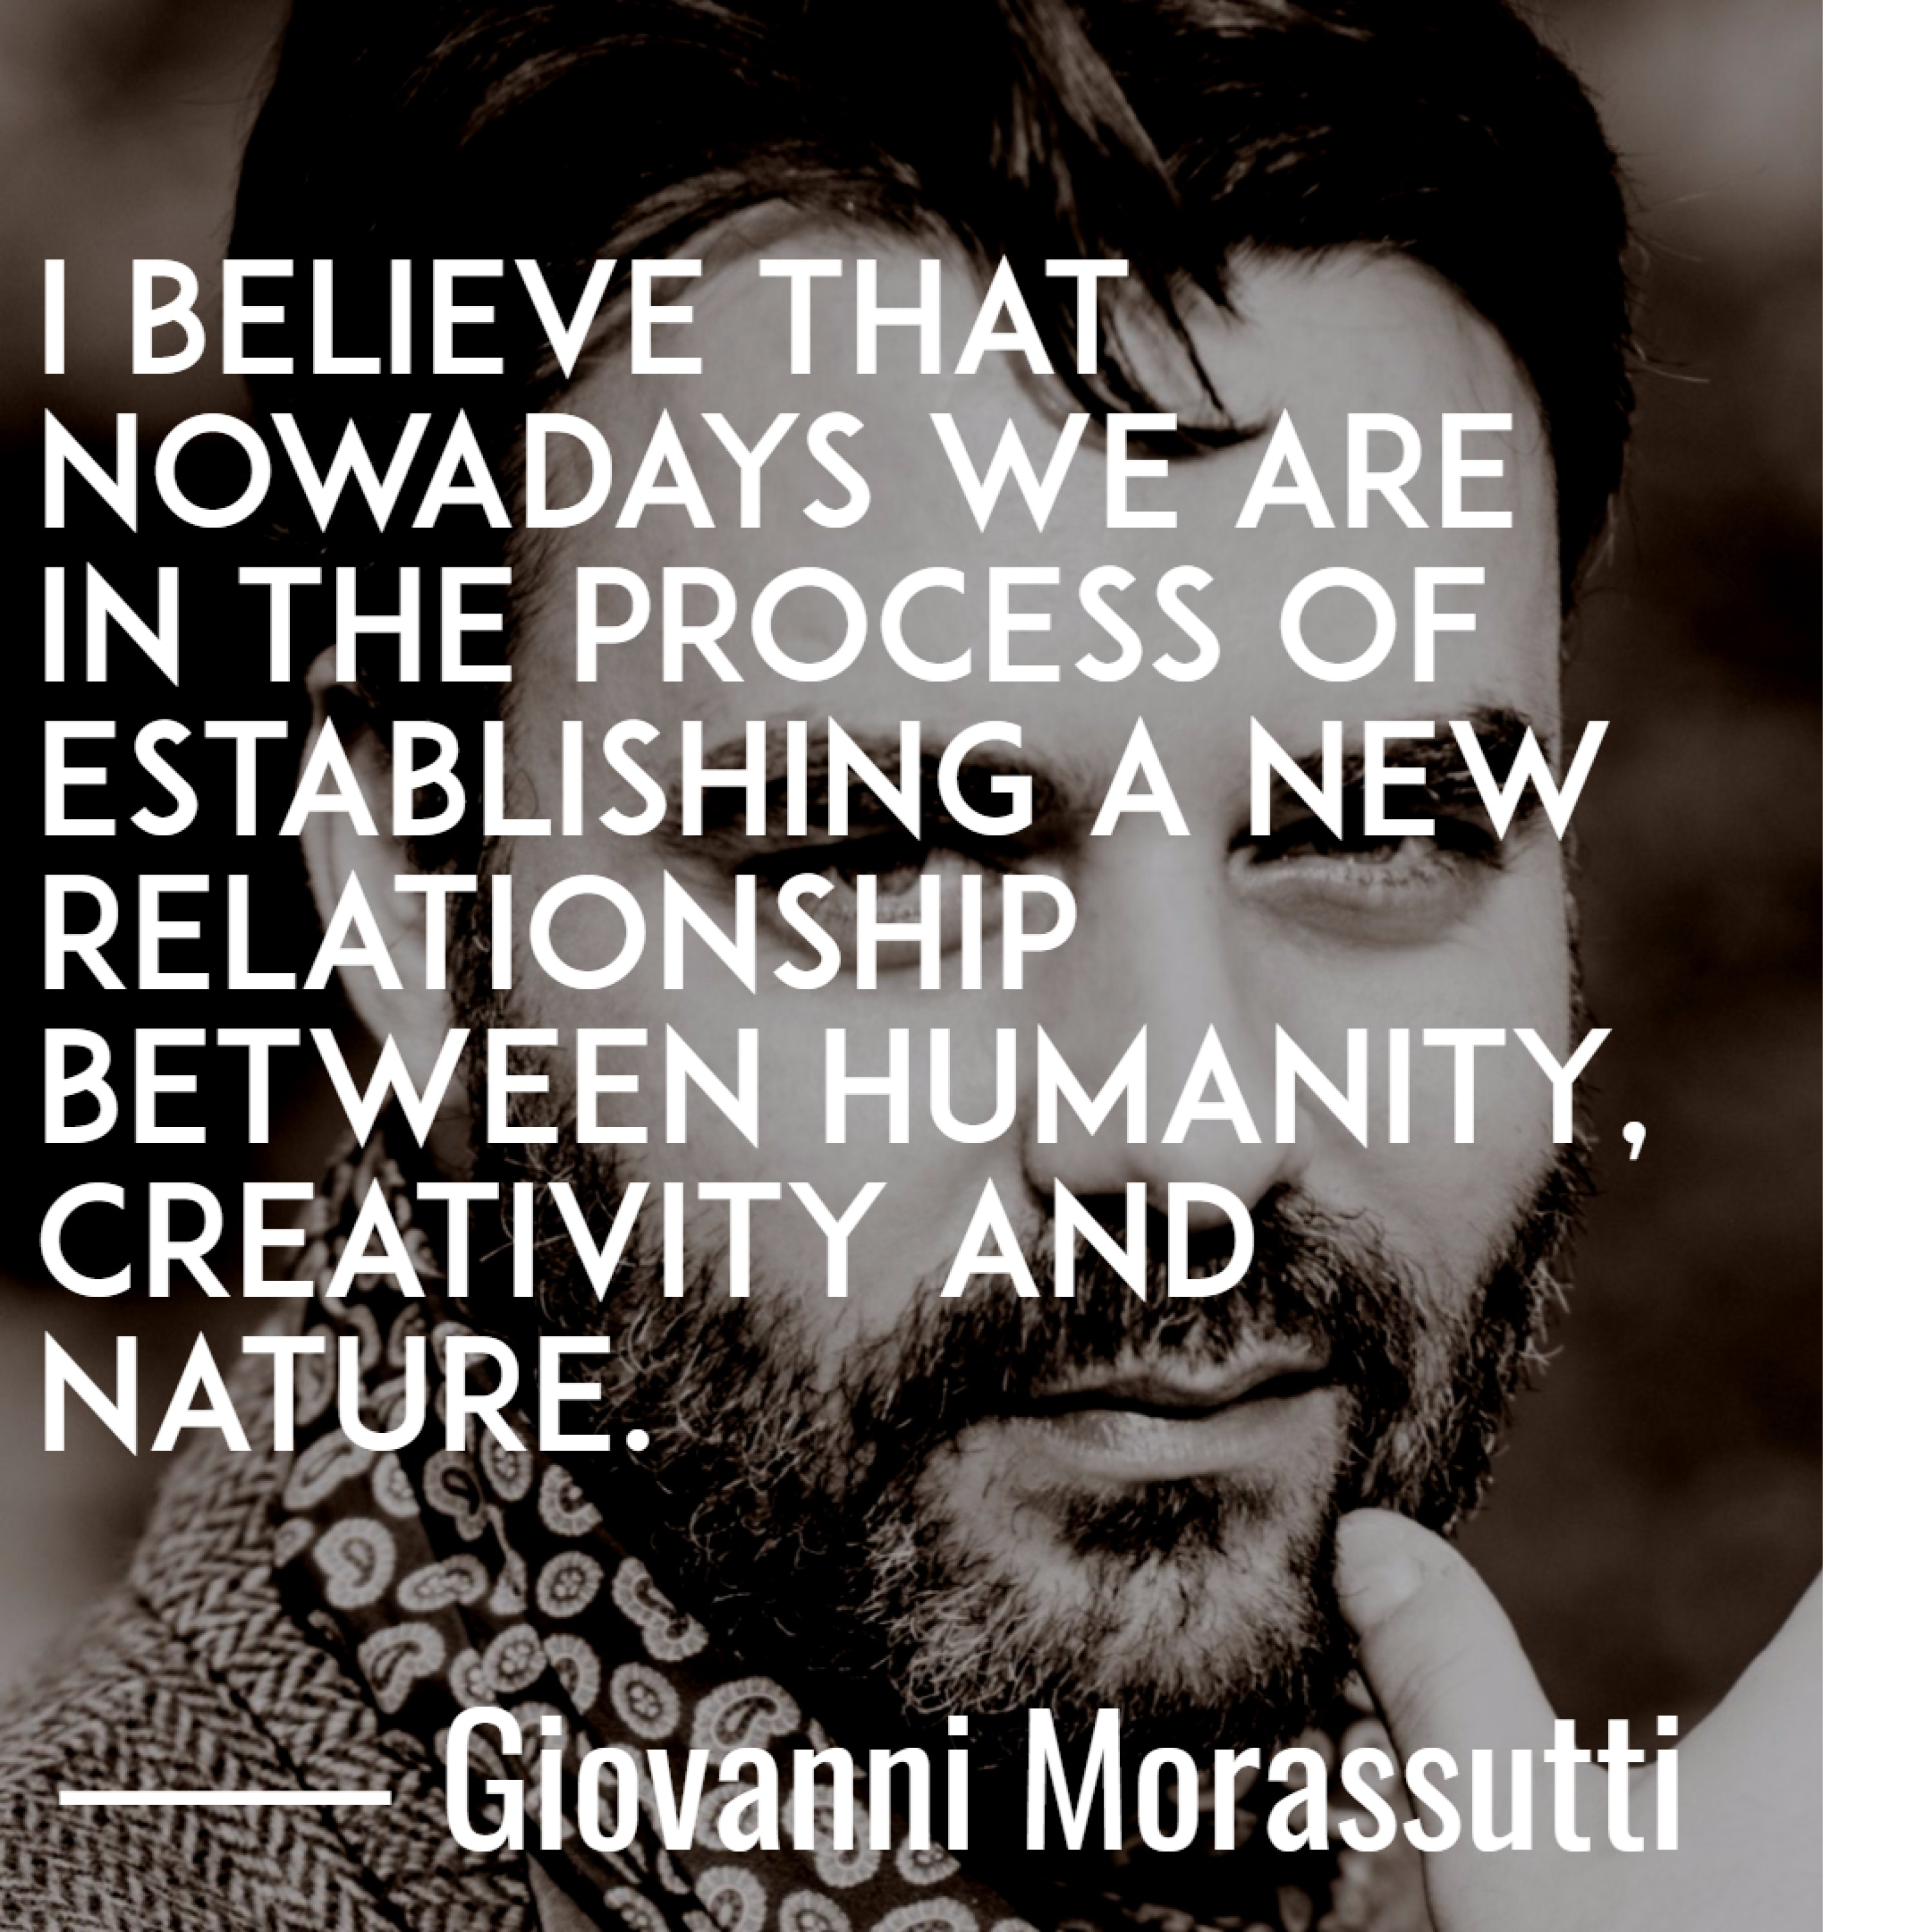 """I believe that nowadays we are in the process of establishing a new relationship between humanity, creativity and nature."" ― Giovanni Morassutti (3000 x 3000)"